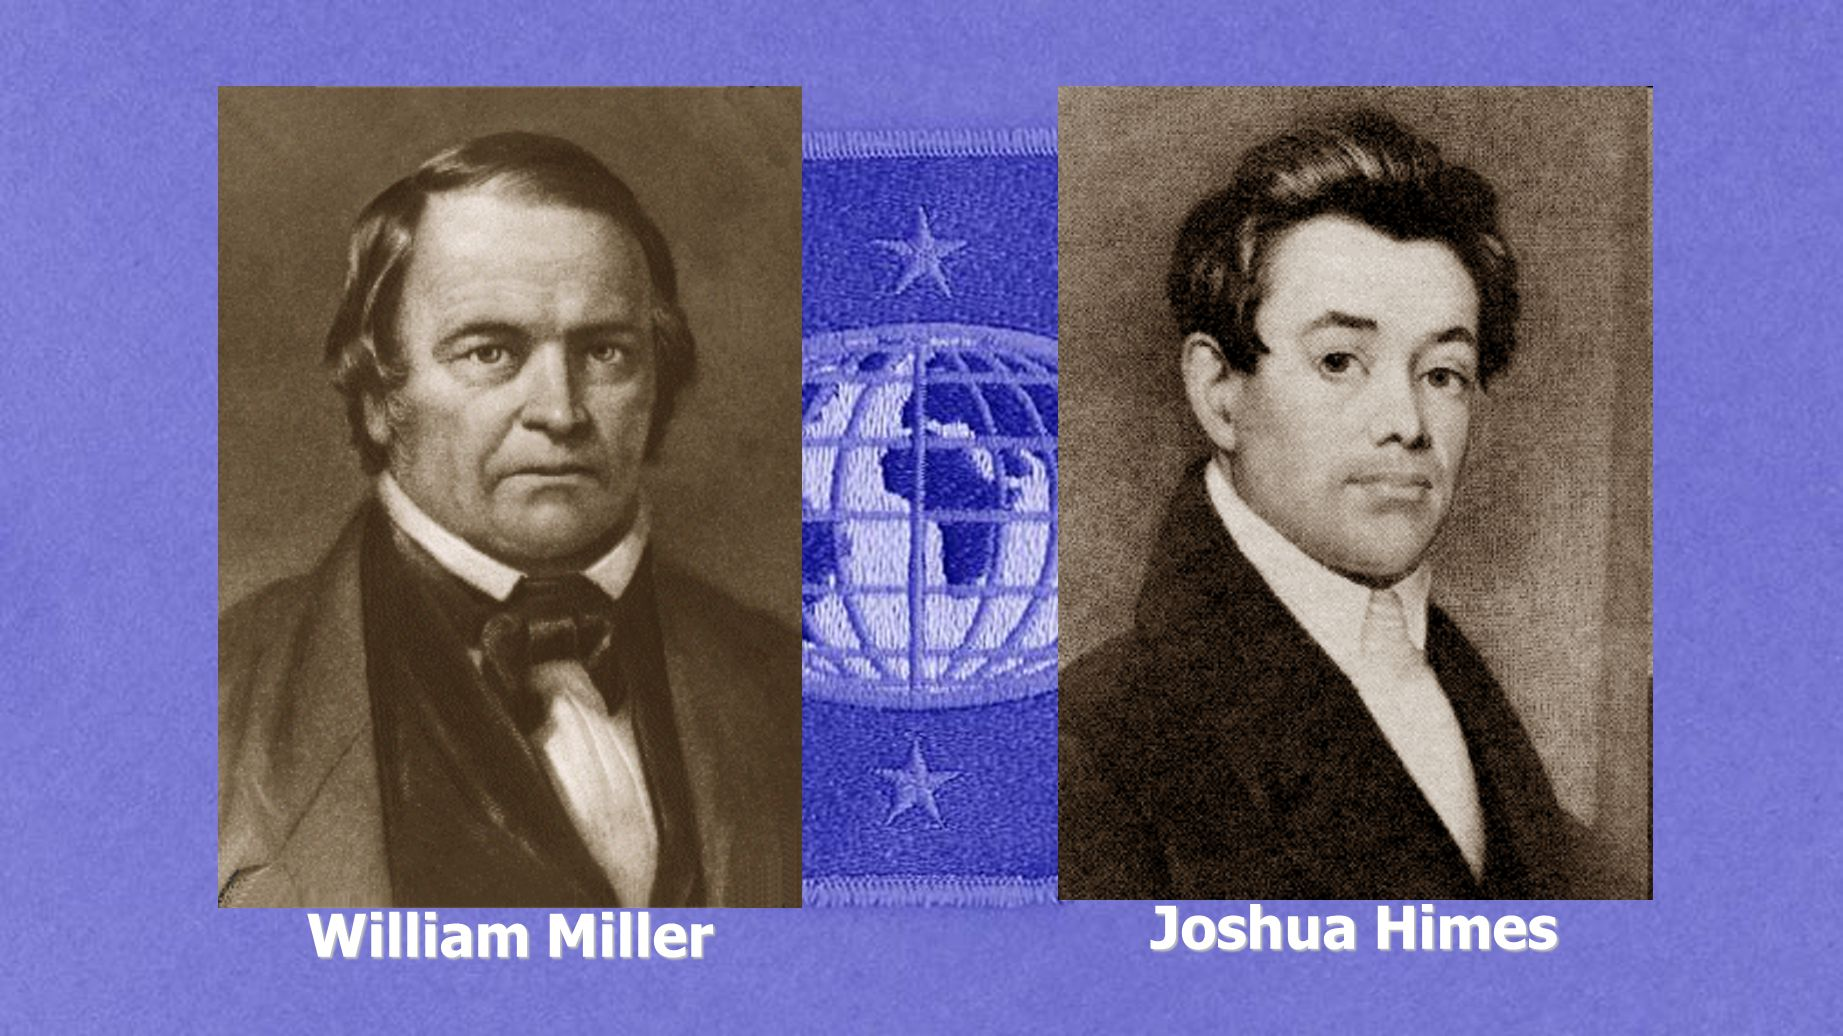 Joshua Himes William Miller